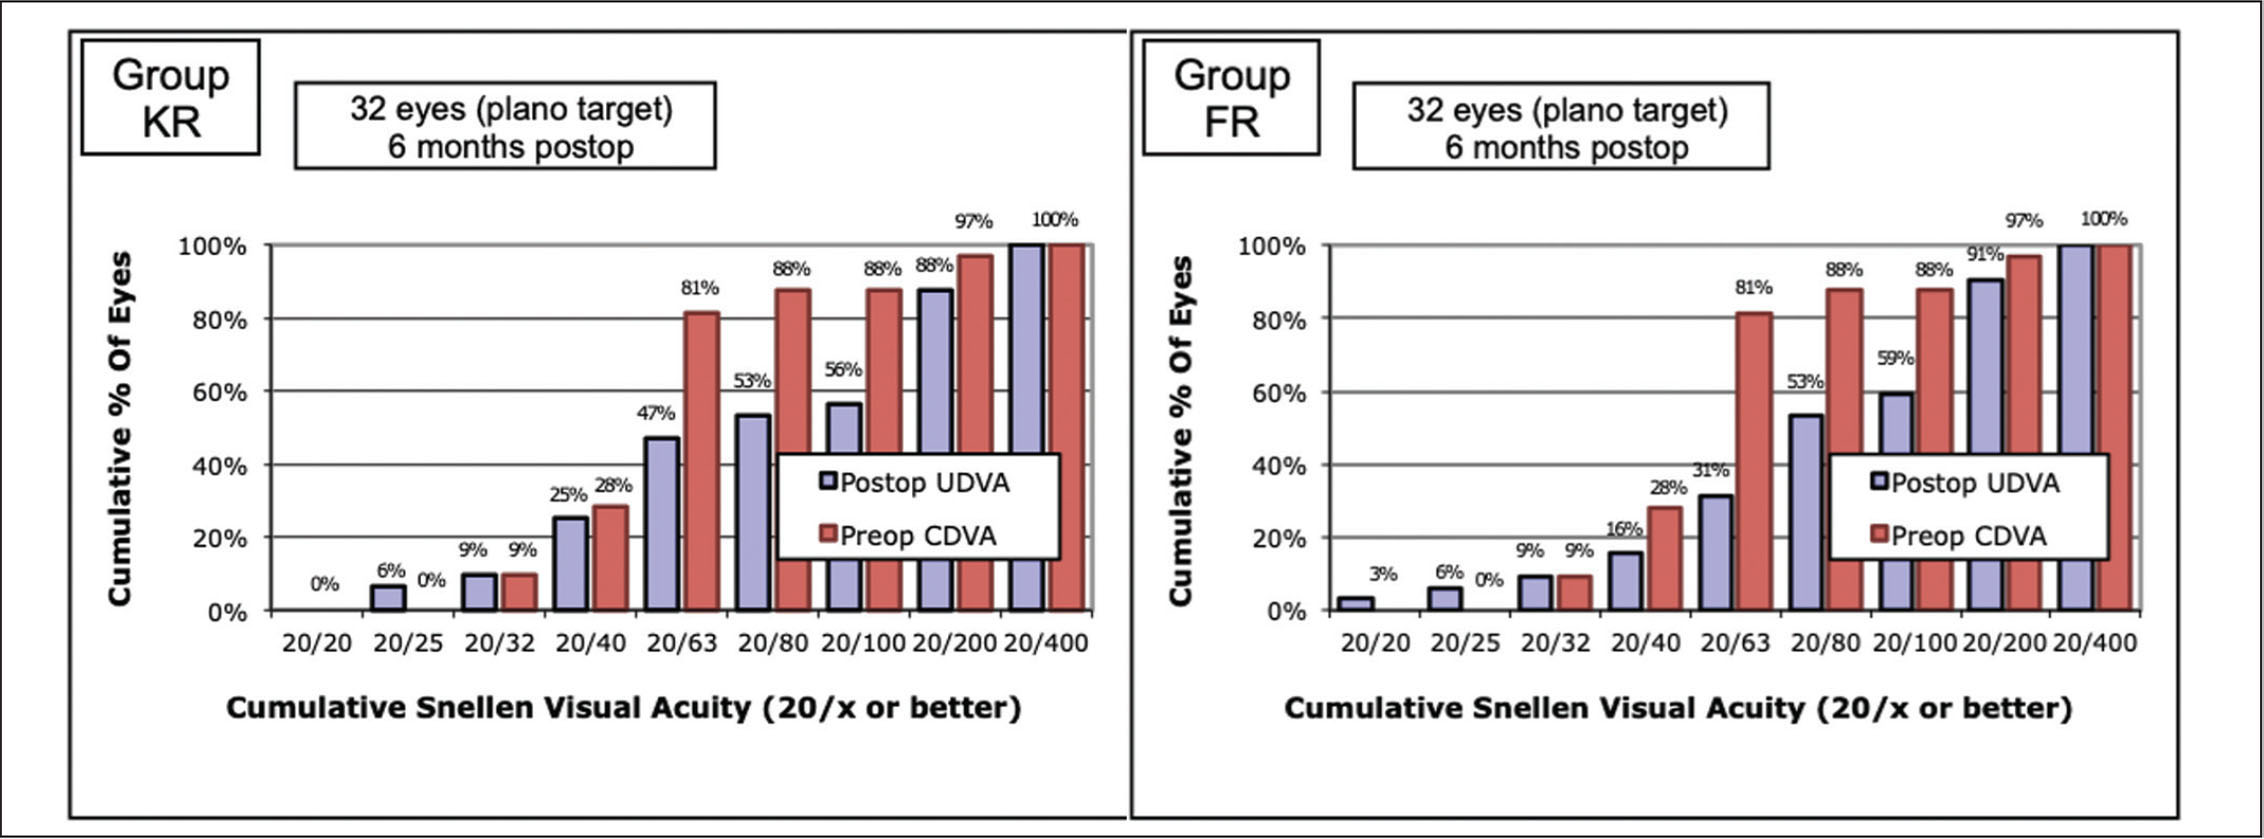 Efficacy. Postoperative uncorrected distance visual acuity (UDVA) versus preoperative corrected distance visual acuity (CDVA) in the Keraring (Mediphacos, Belo Horizonte, Brazil) group (left) and in the Ferrara (AJL Ophthalmics, Vitoria, Spain) group (right).